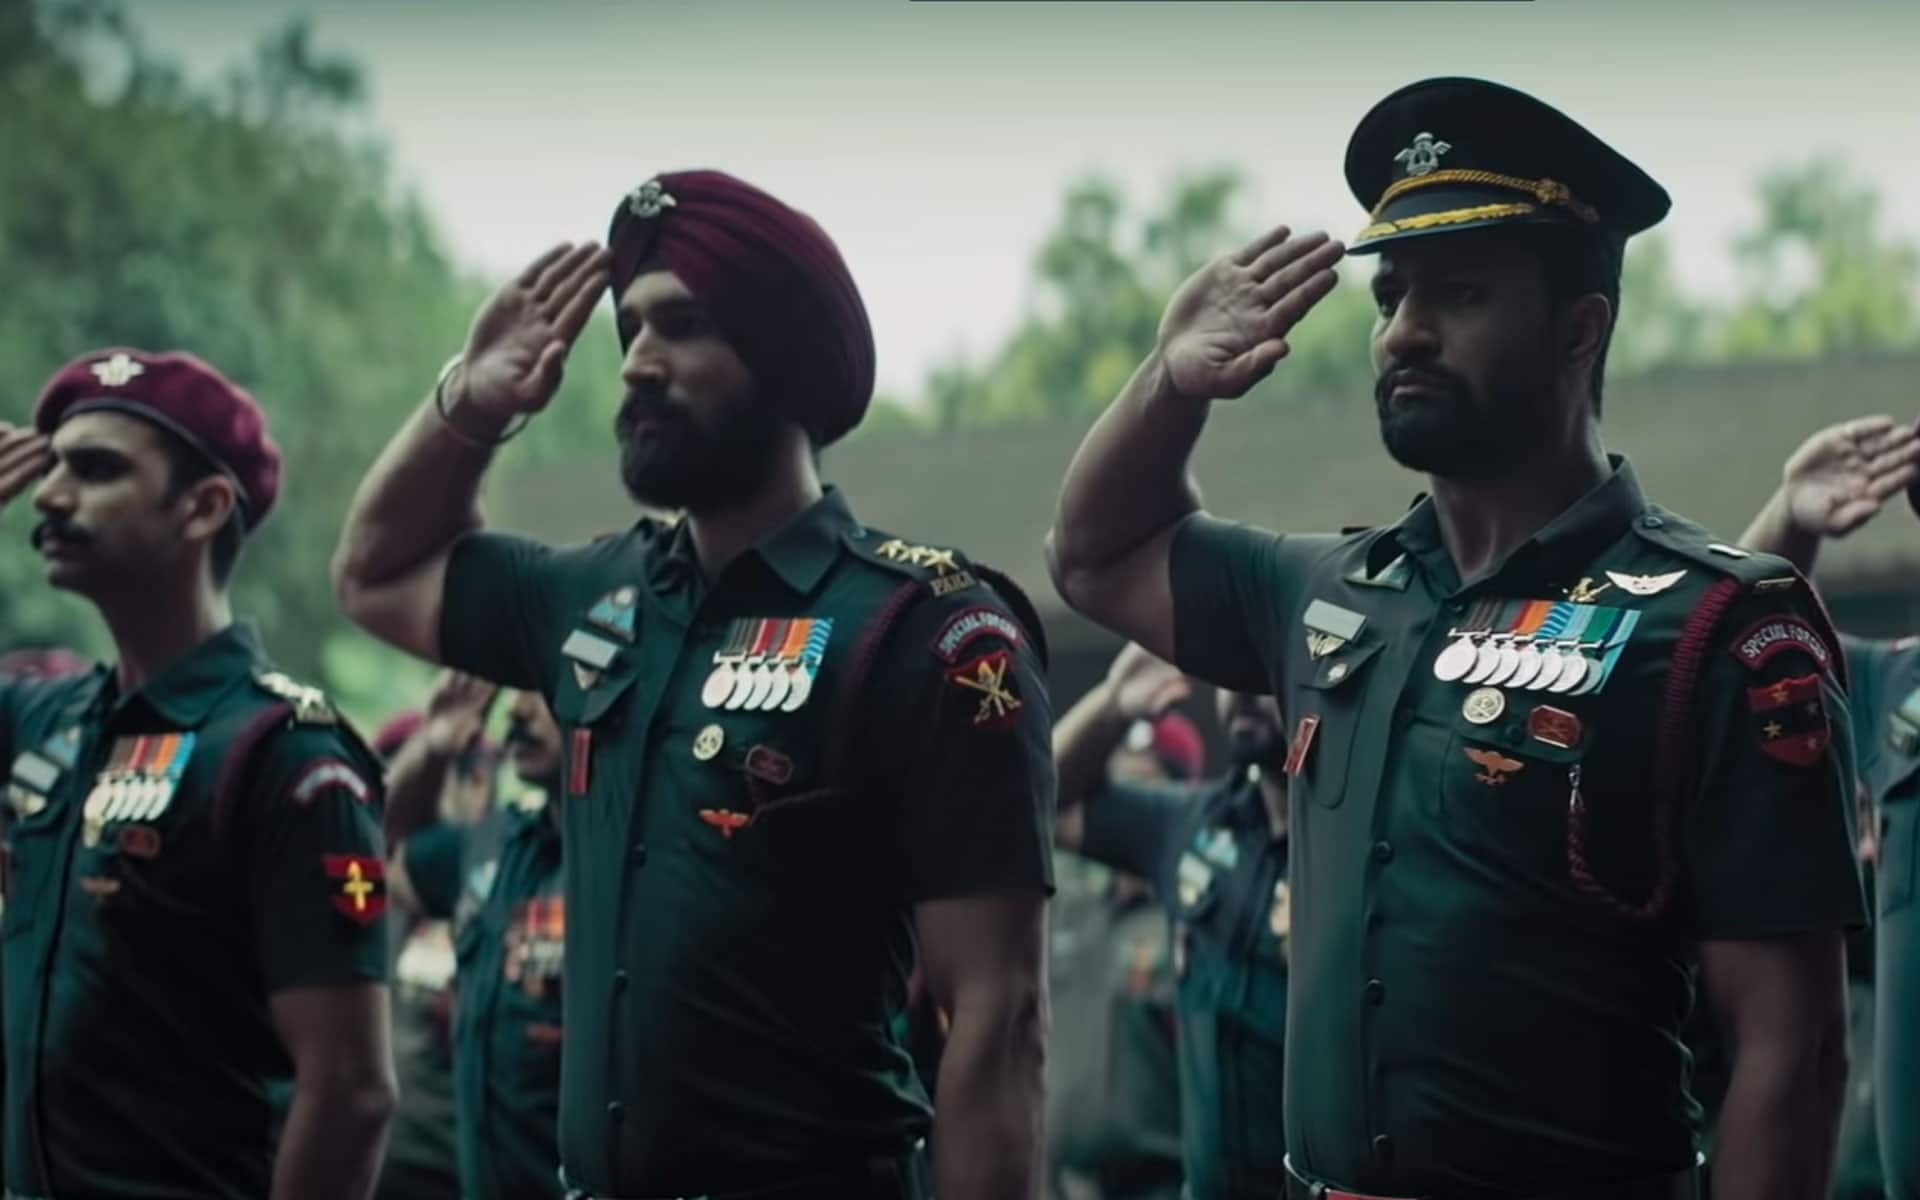 Wondering Why 2019 Film Uri: The Surgical Strike Was Considered For National Award This Year? Here's The Answer